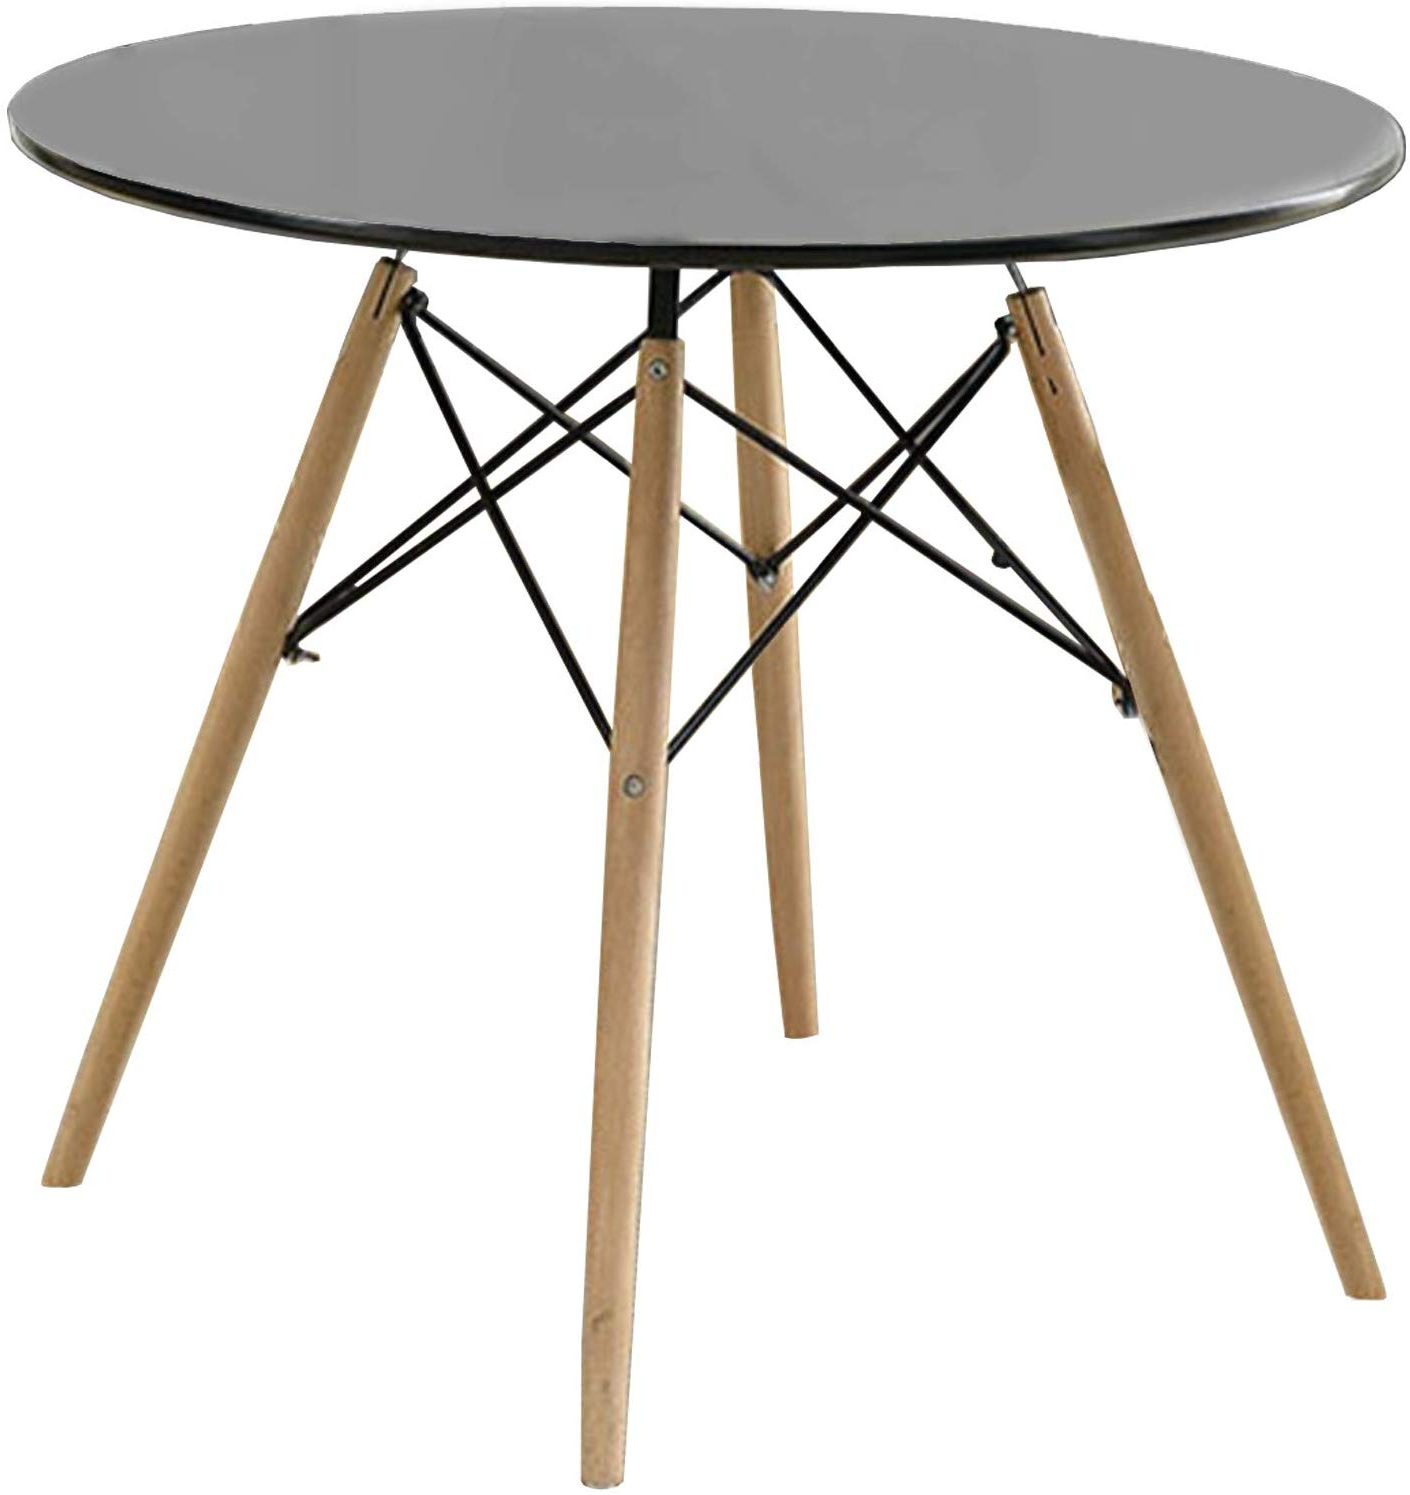 Frosted Glass Modern Dining Tables With Grey Finish Metal Tapered Legs Intended For Most Recent Amazon – Benzara Round Dining Table With Metal Legs And (View 4 of 30)